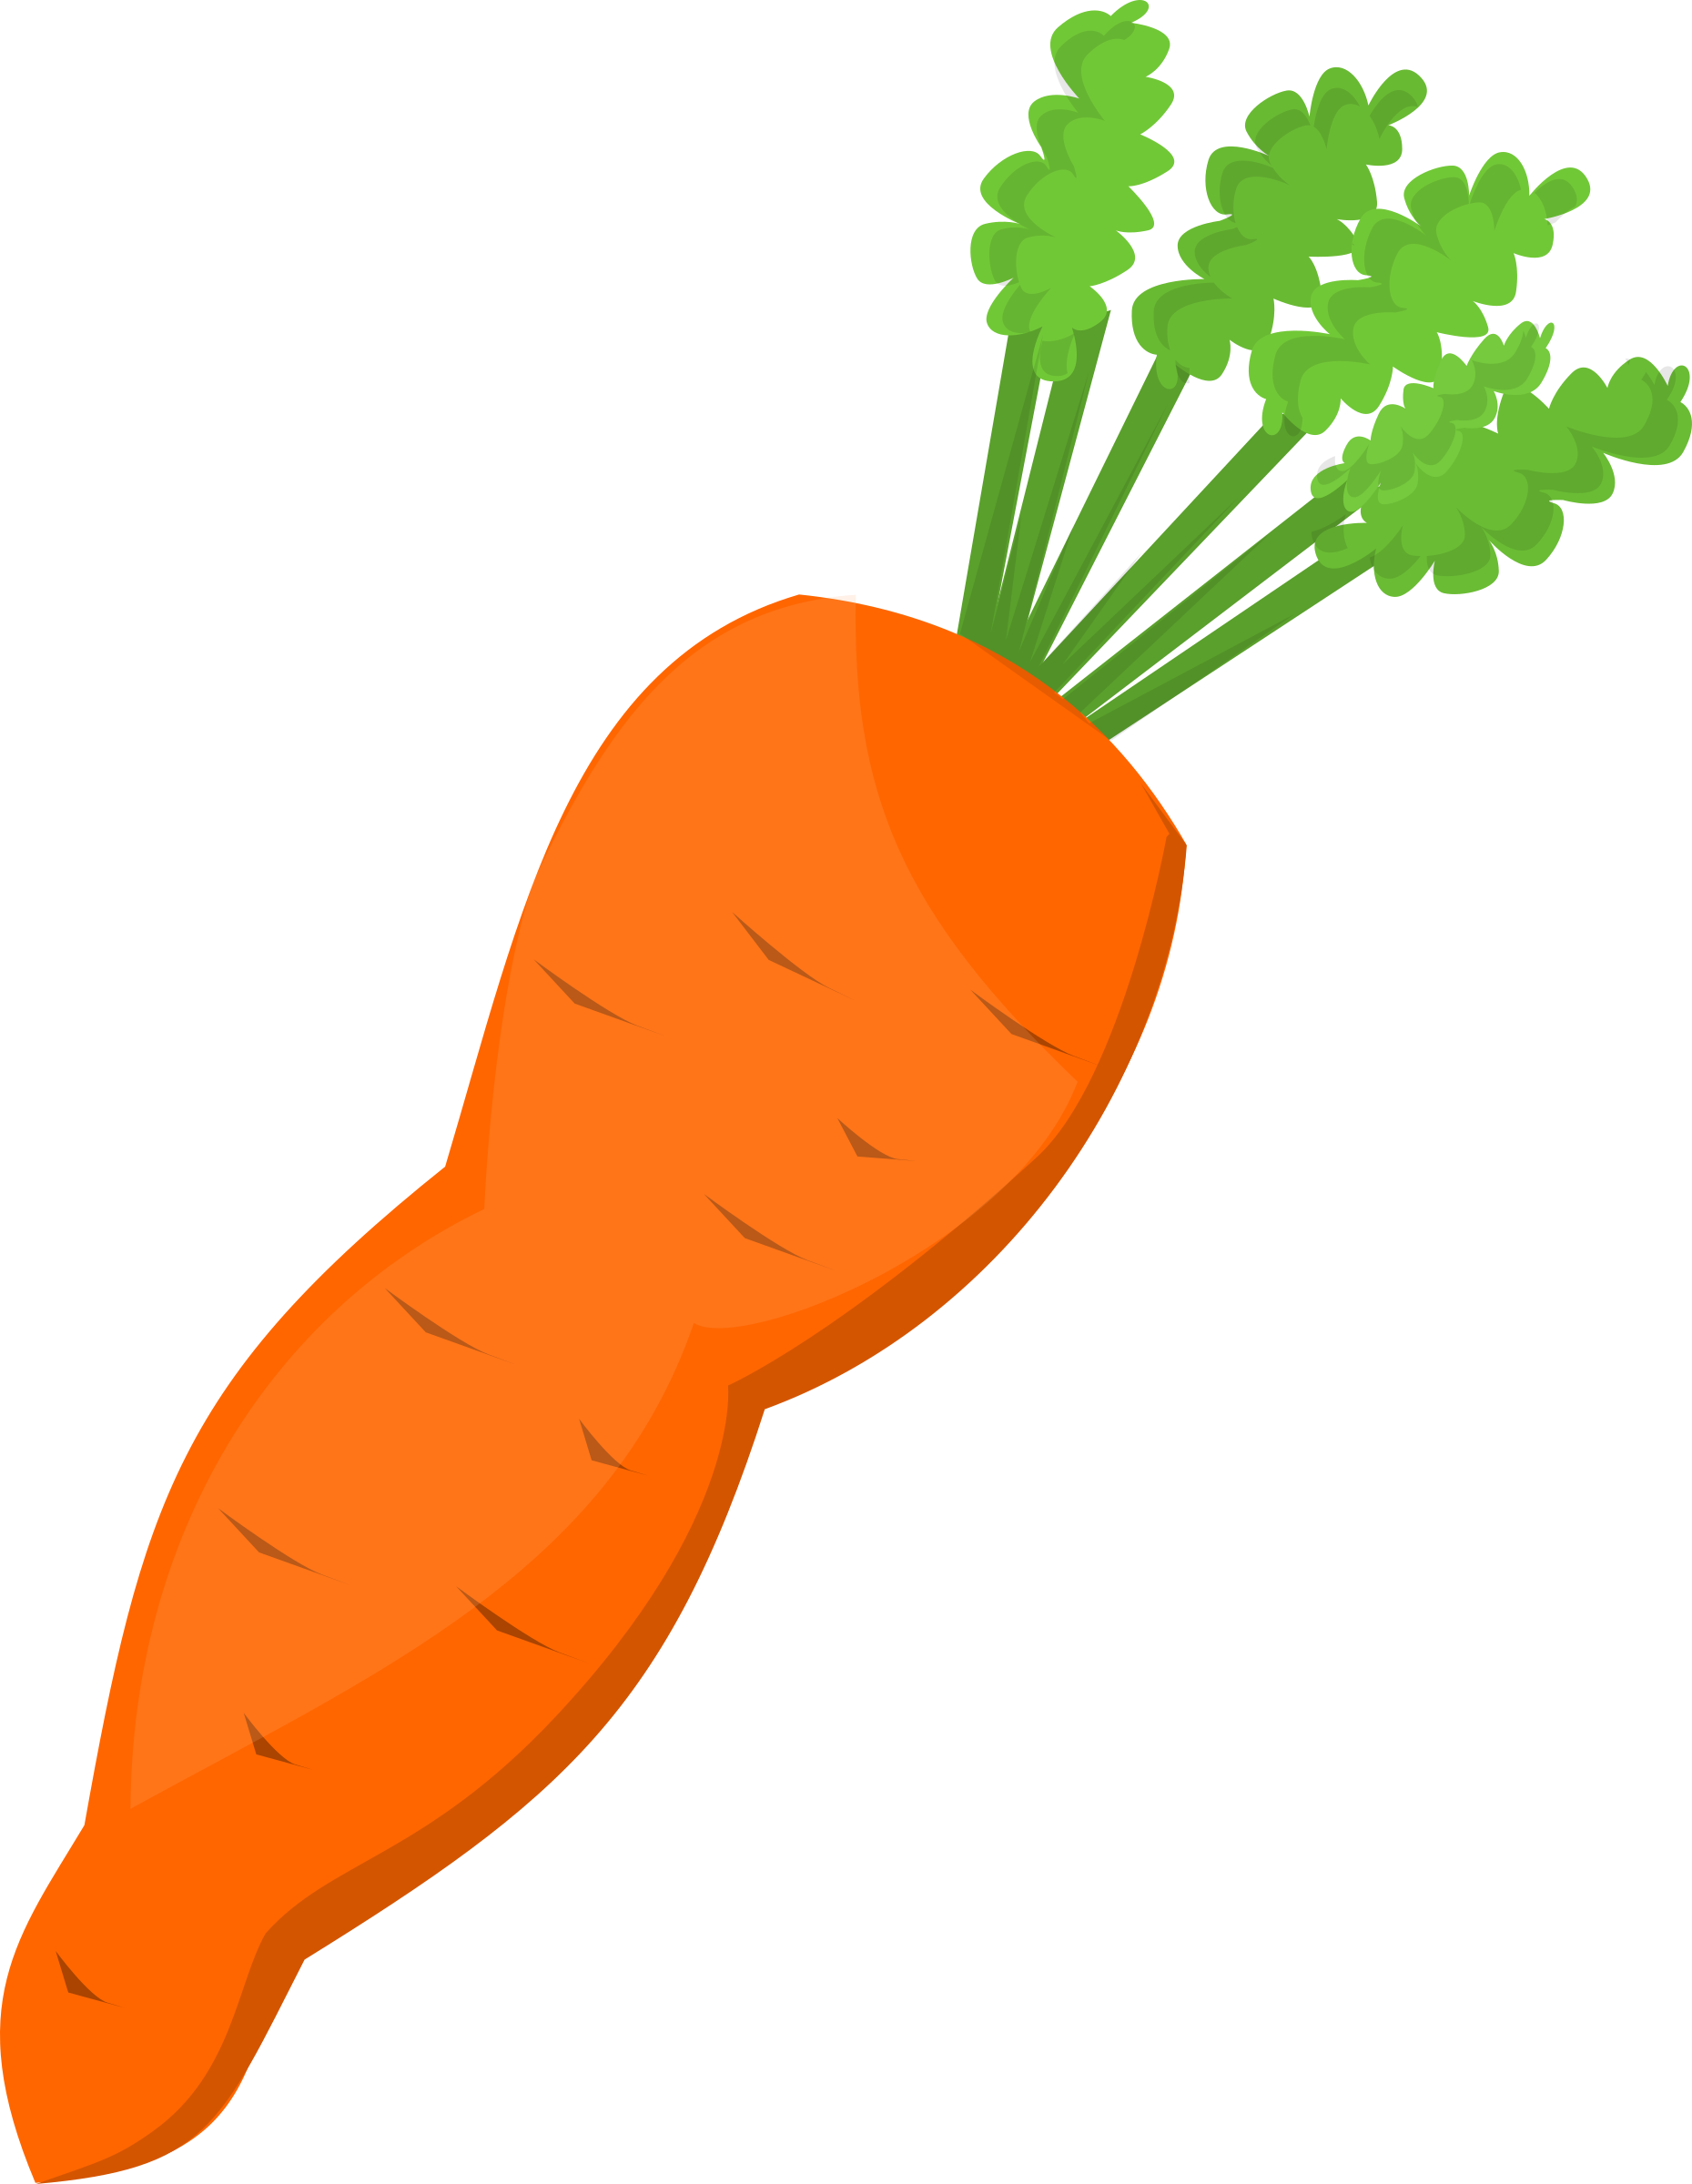 Free Carrot Cliparts, Download Free Clip Art, Free Clip Art on ... jpg free download